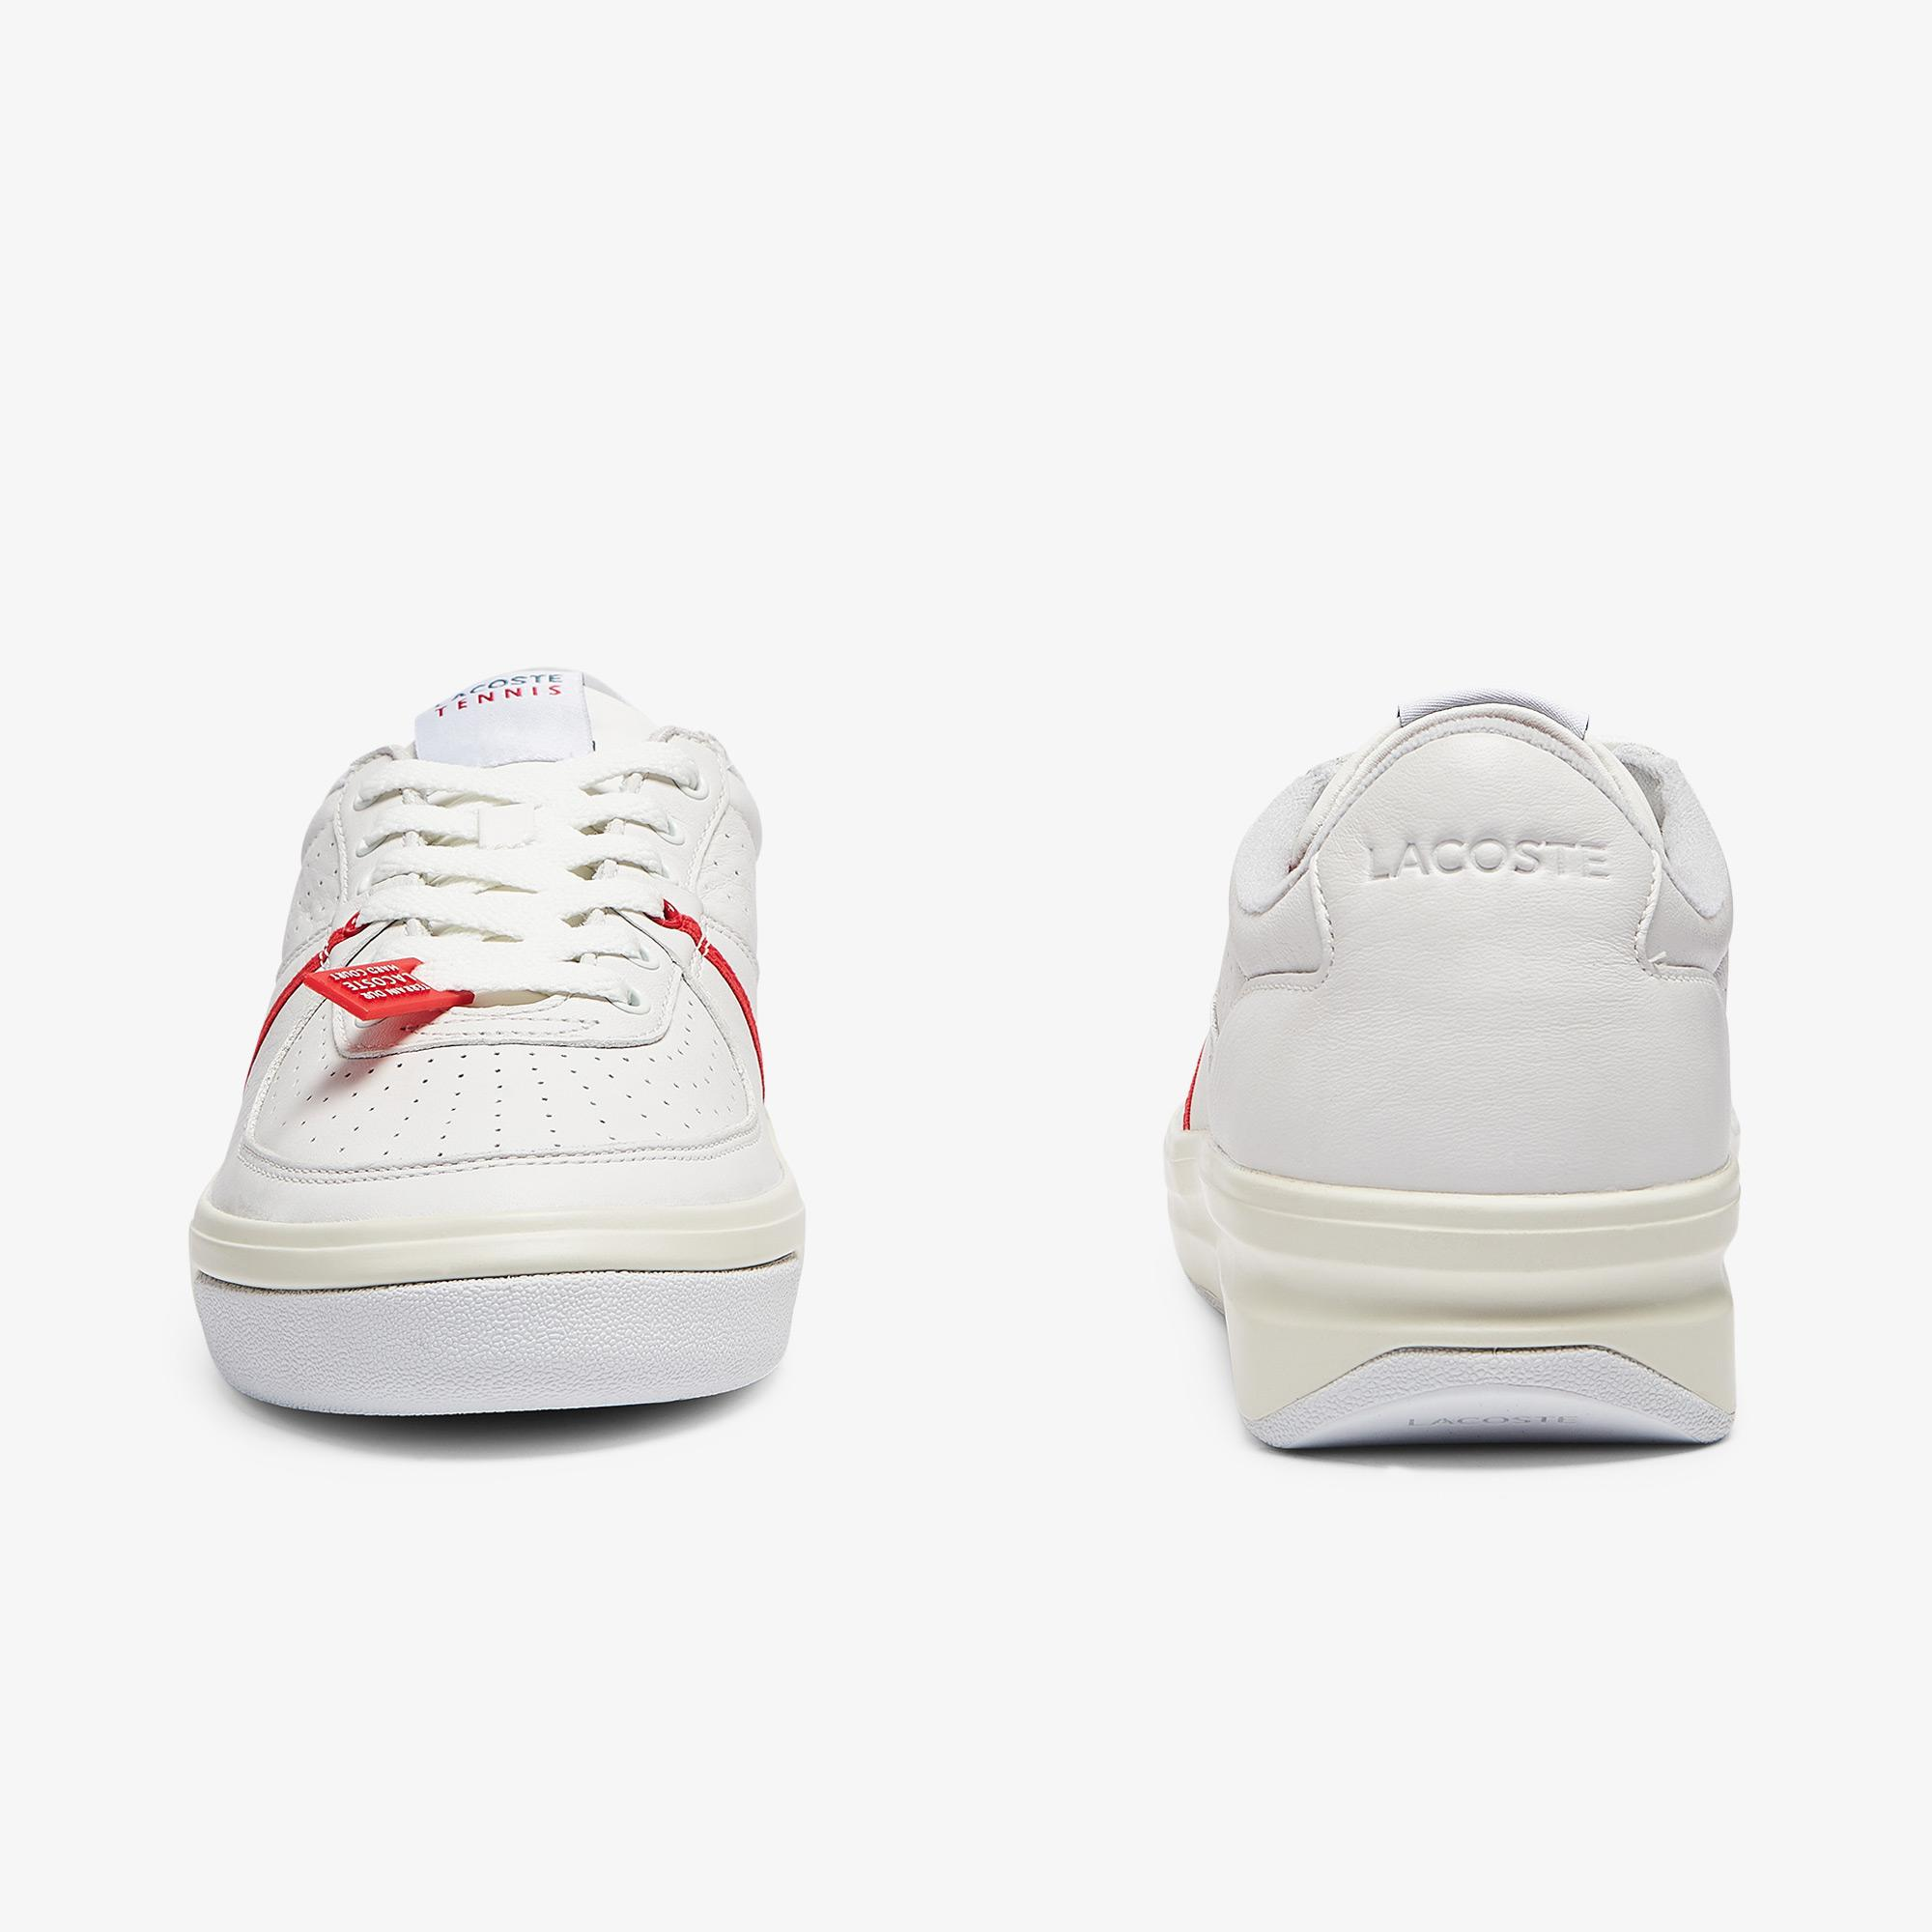 Lacoste Men's Quantace 0721 1 Sma Shoes